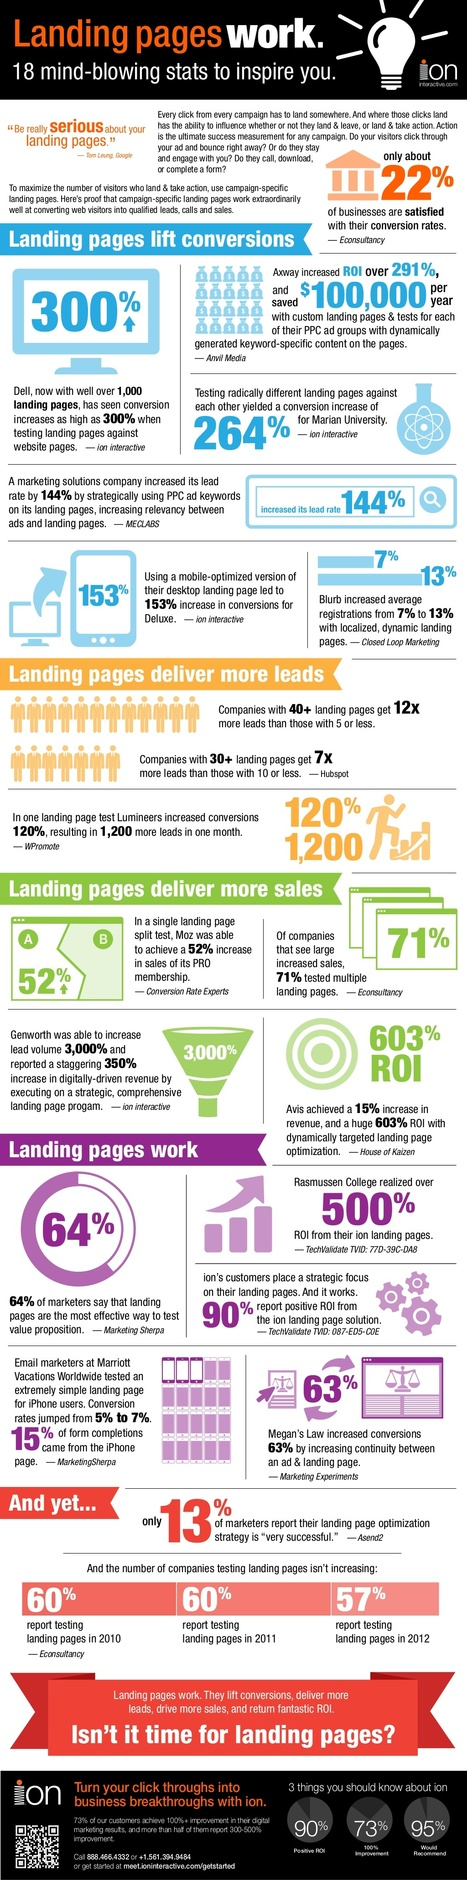 E-commerce Eye Candy - Landing Pages Work [Infographic] - Building Keystones | #TheMarketingAutomationAlert | digital marketing strategy | Scoop.it